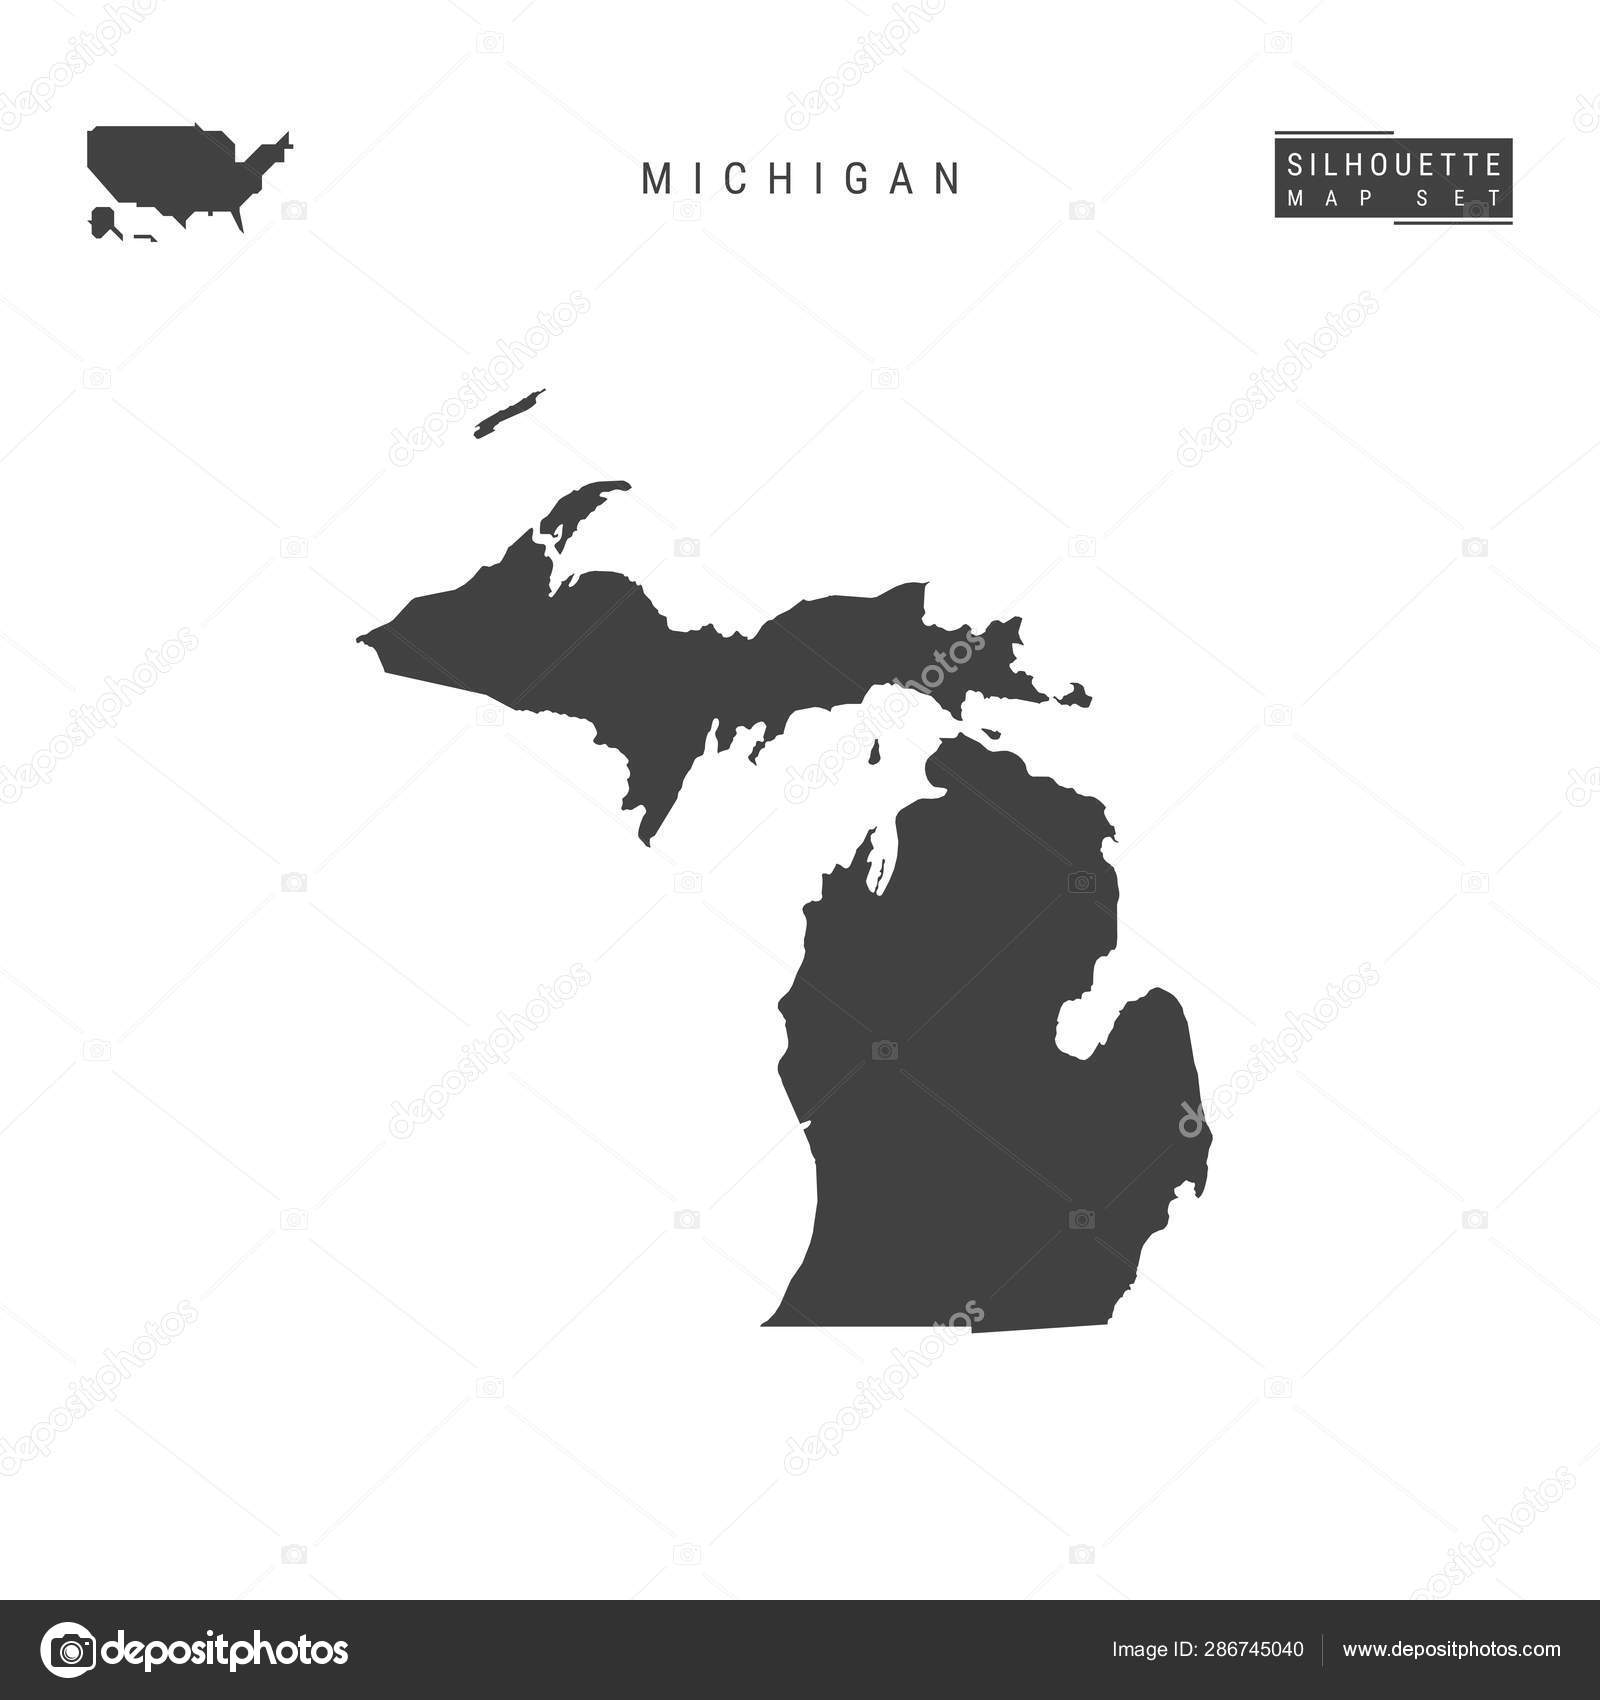 Michigan US State Vector Map Isolated on White Background ...